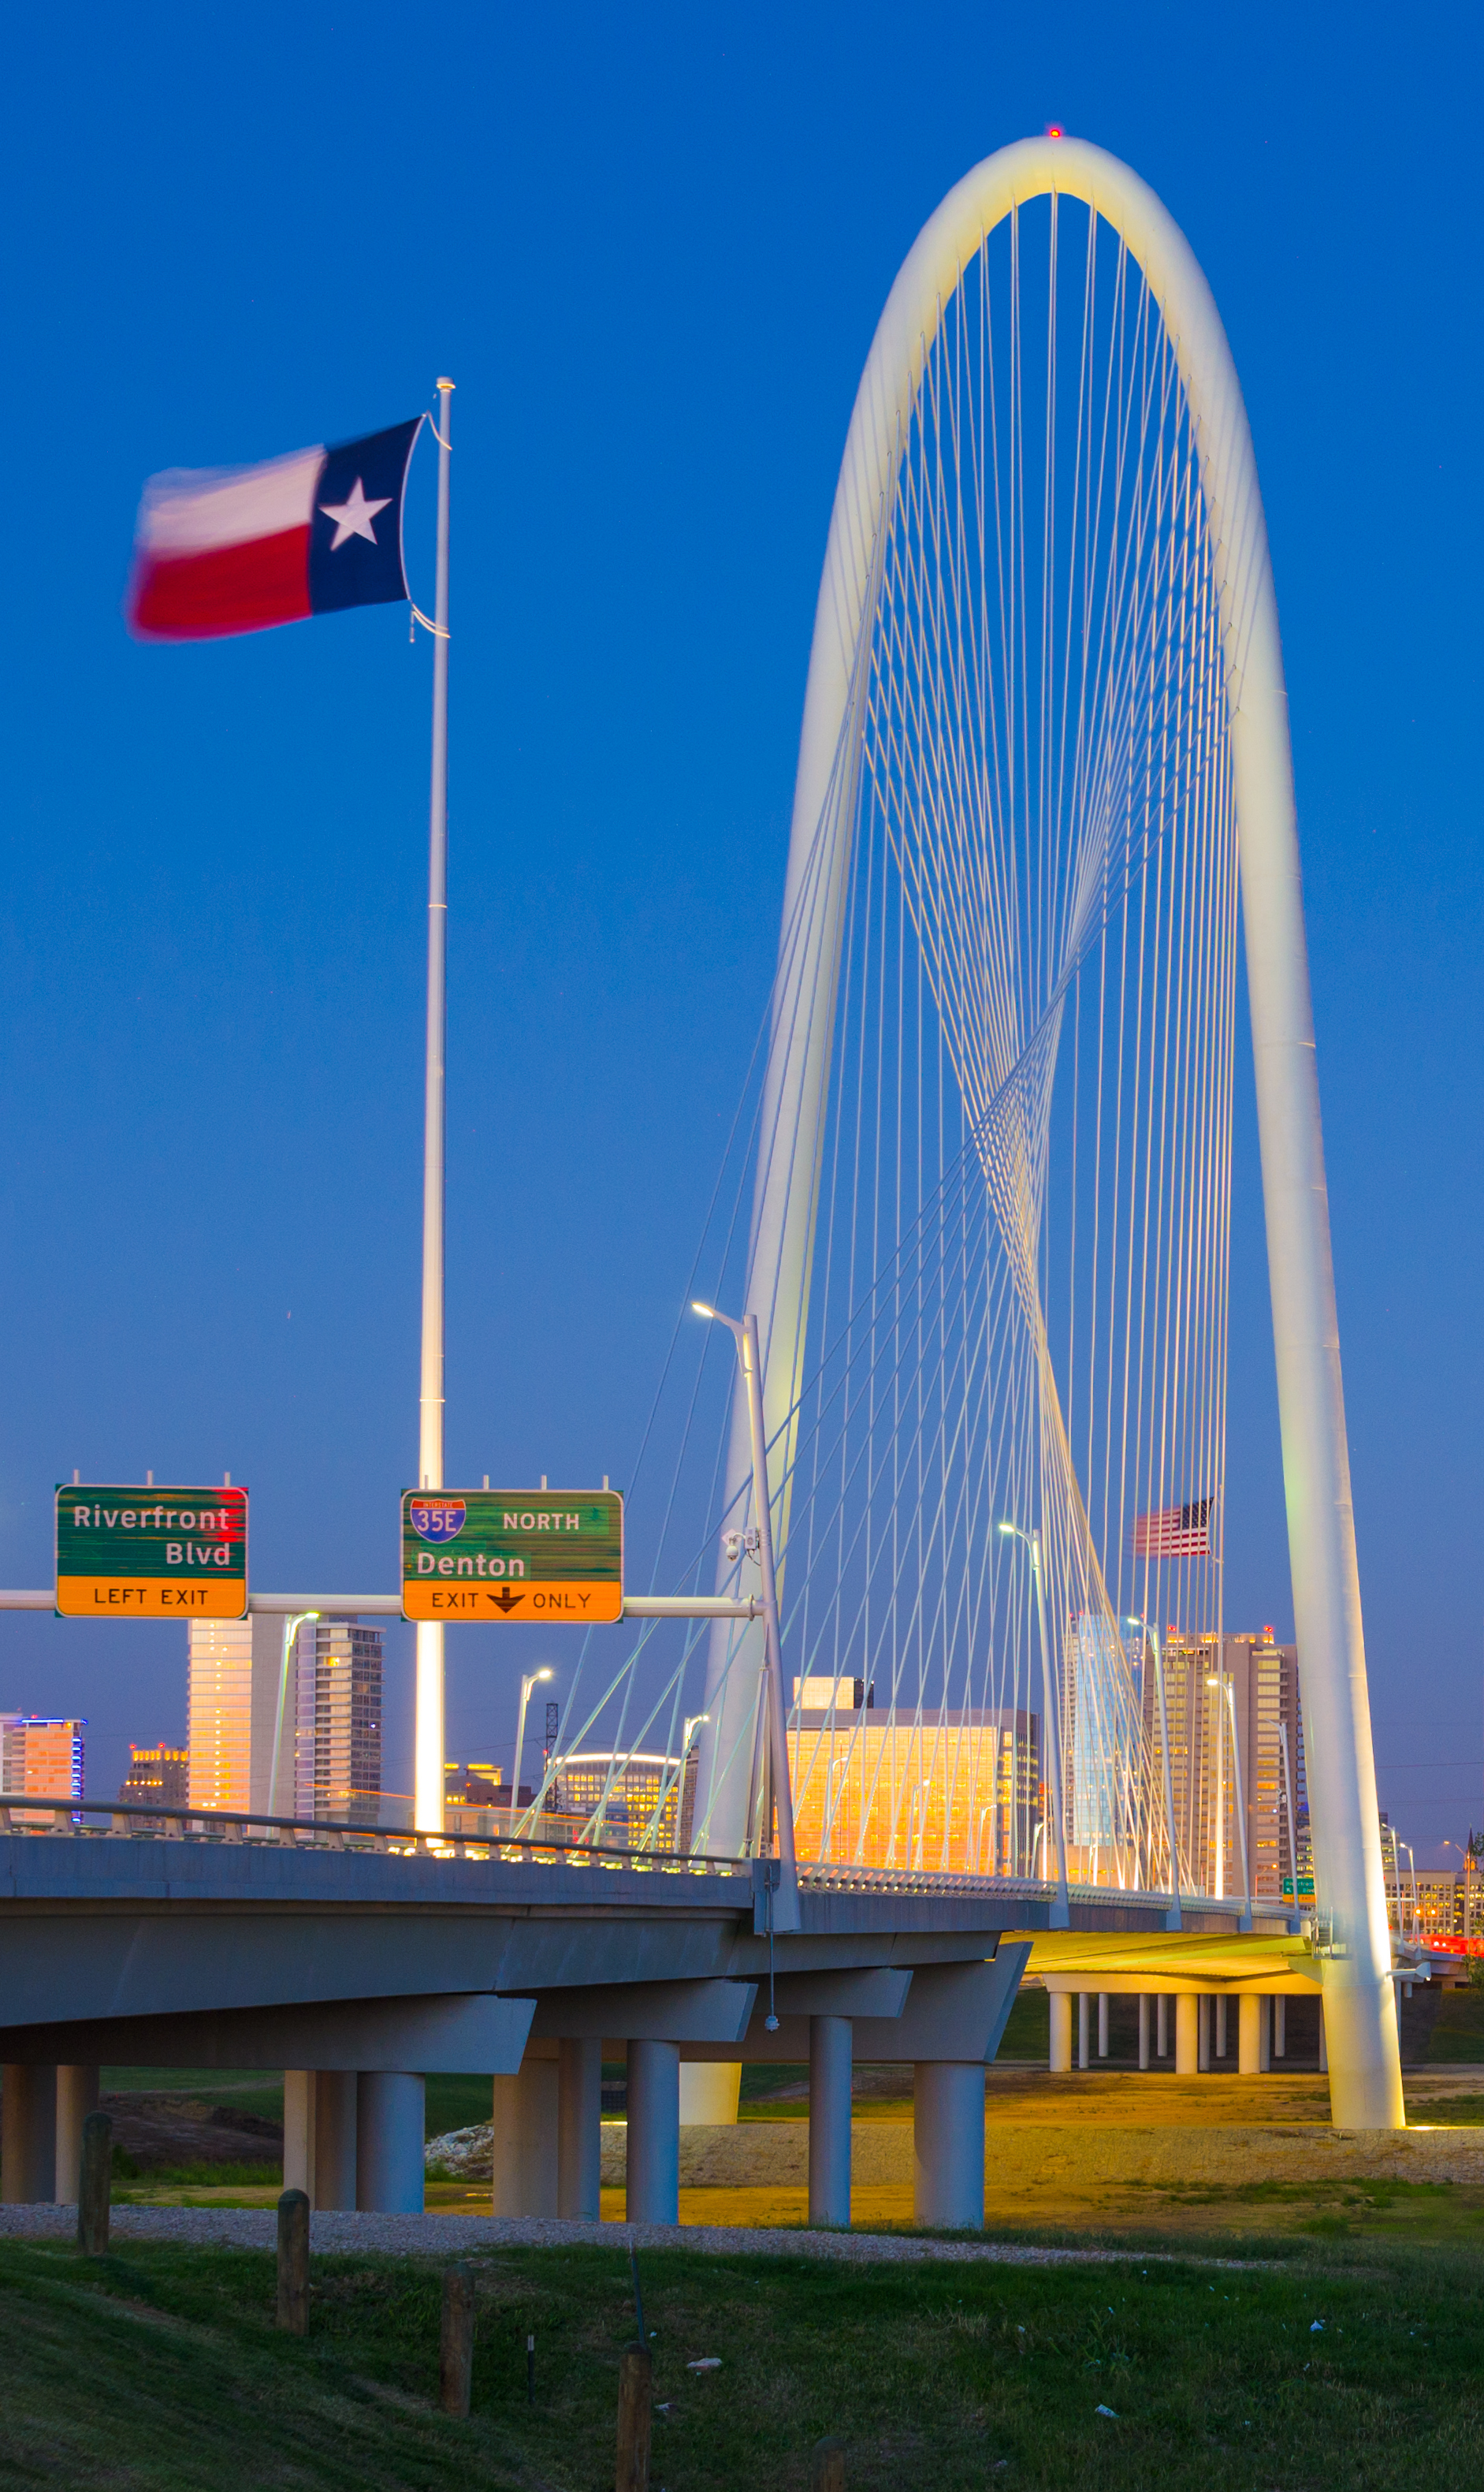 Dallas downtown skyline on the right with the Margaret Hunt Hill Bridge (going over the Trinity River) and the Texas flag on the left.